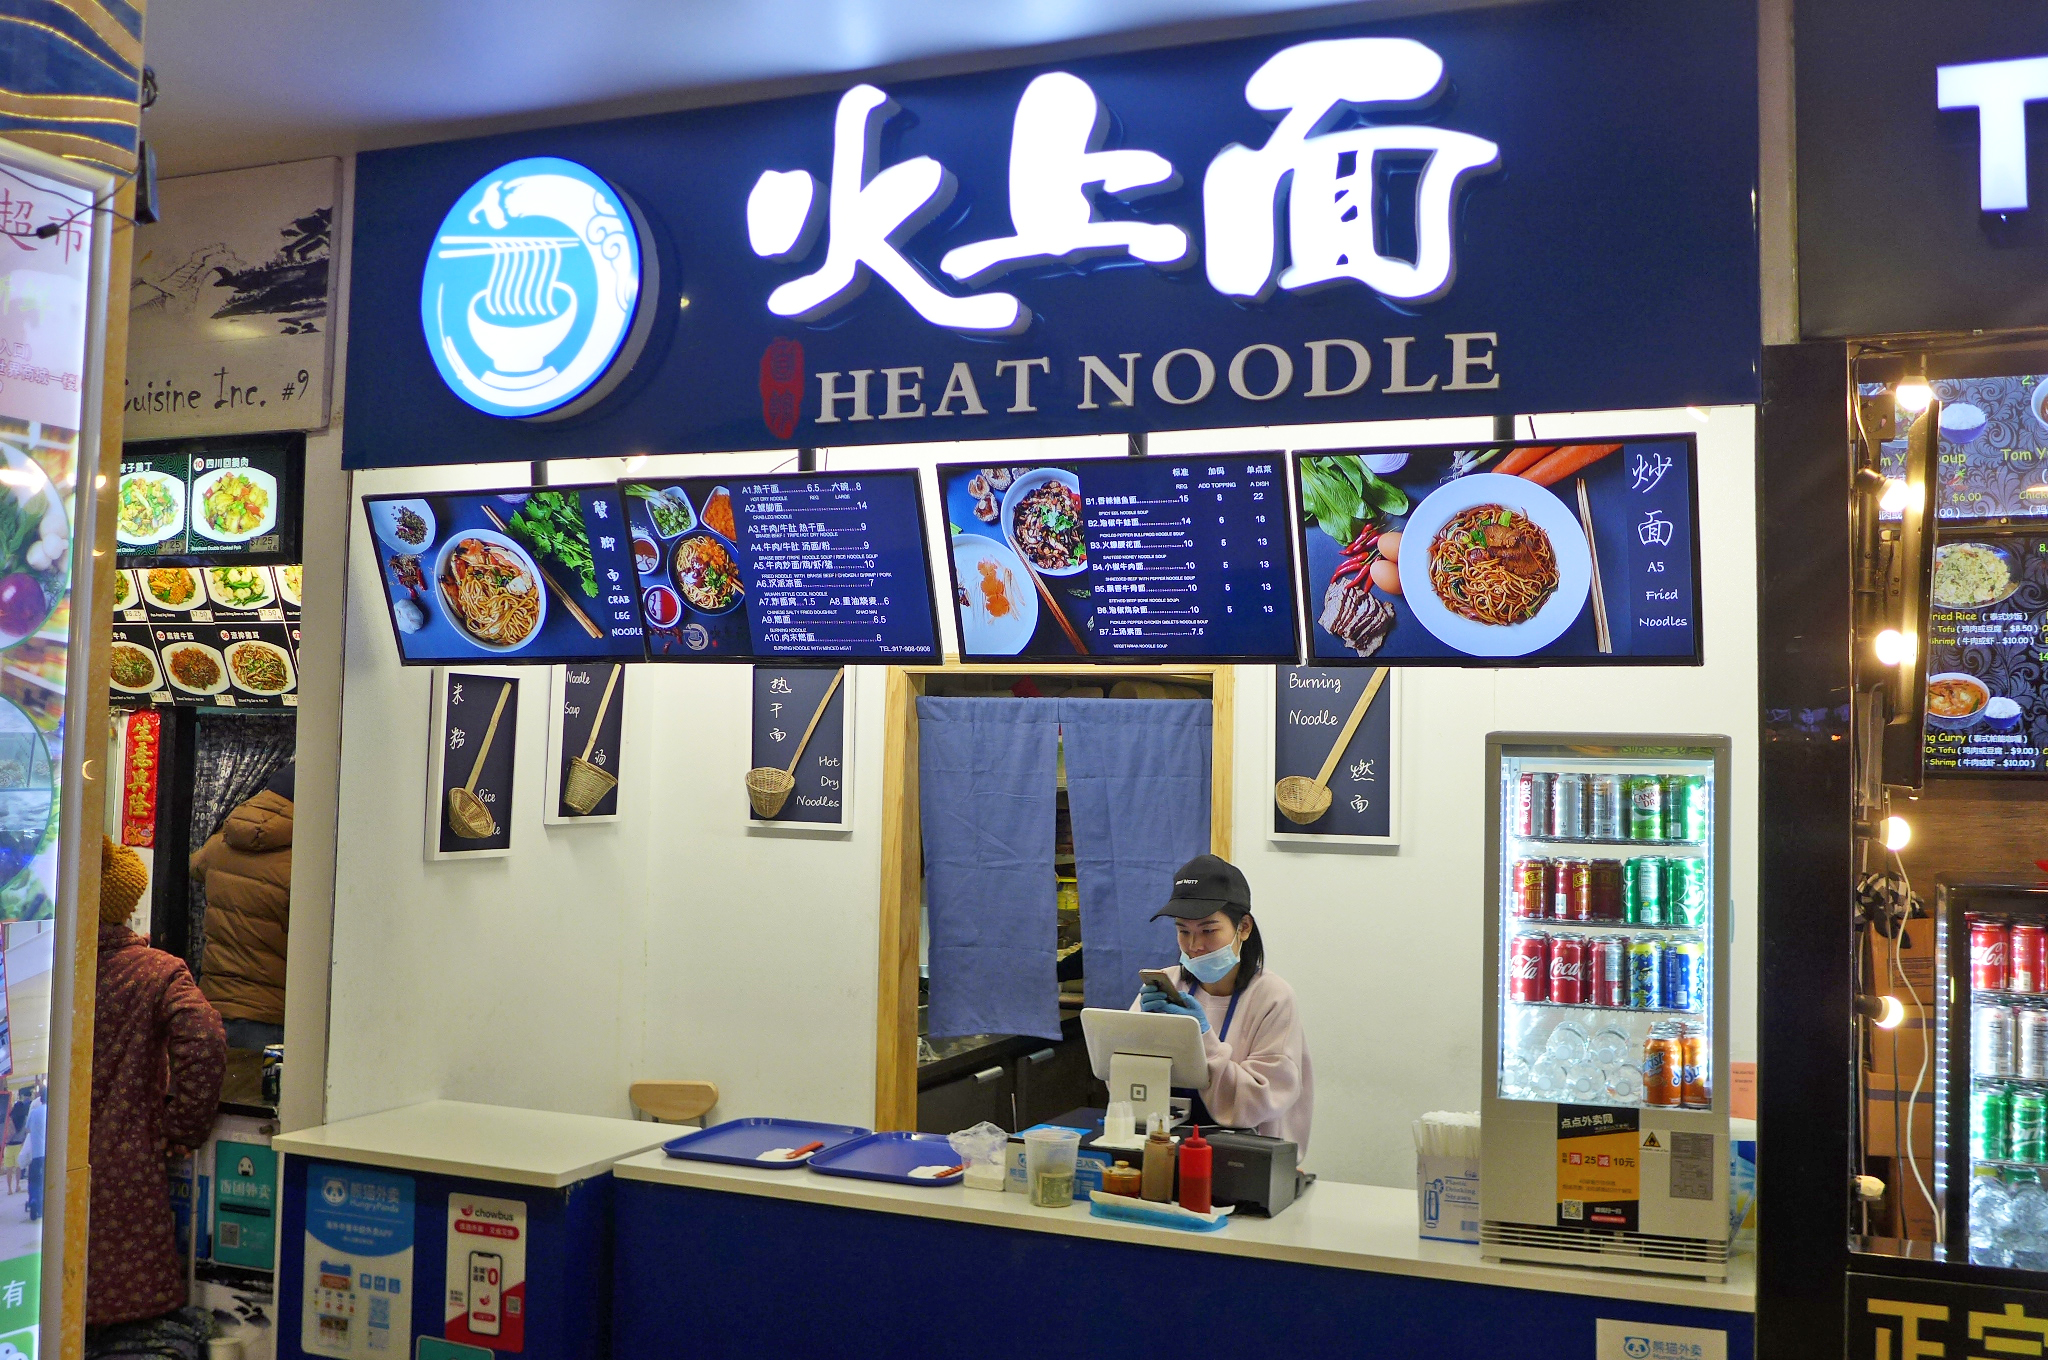 The exterior of a food stall with blue signage. A woman can be seen working at the cash register behind a counter